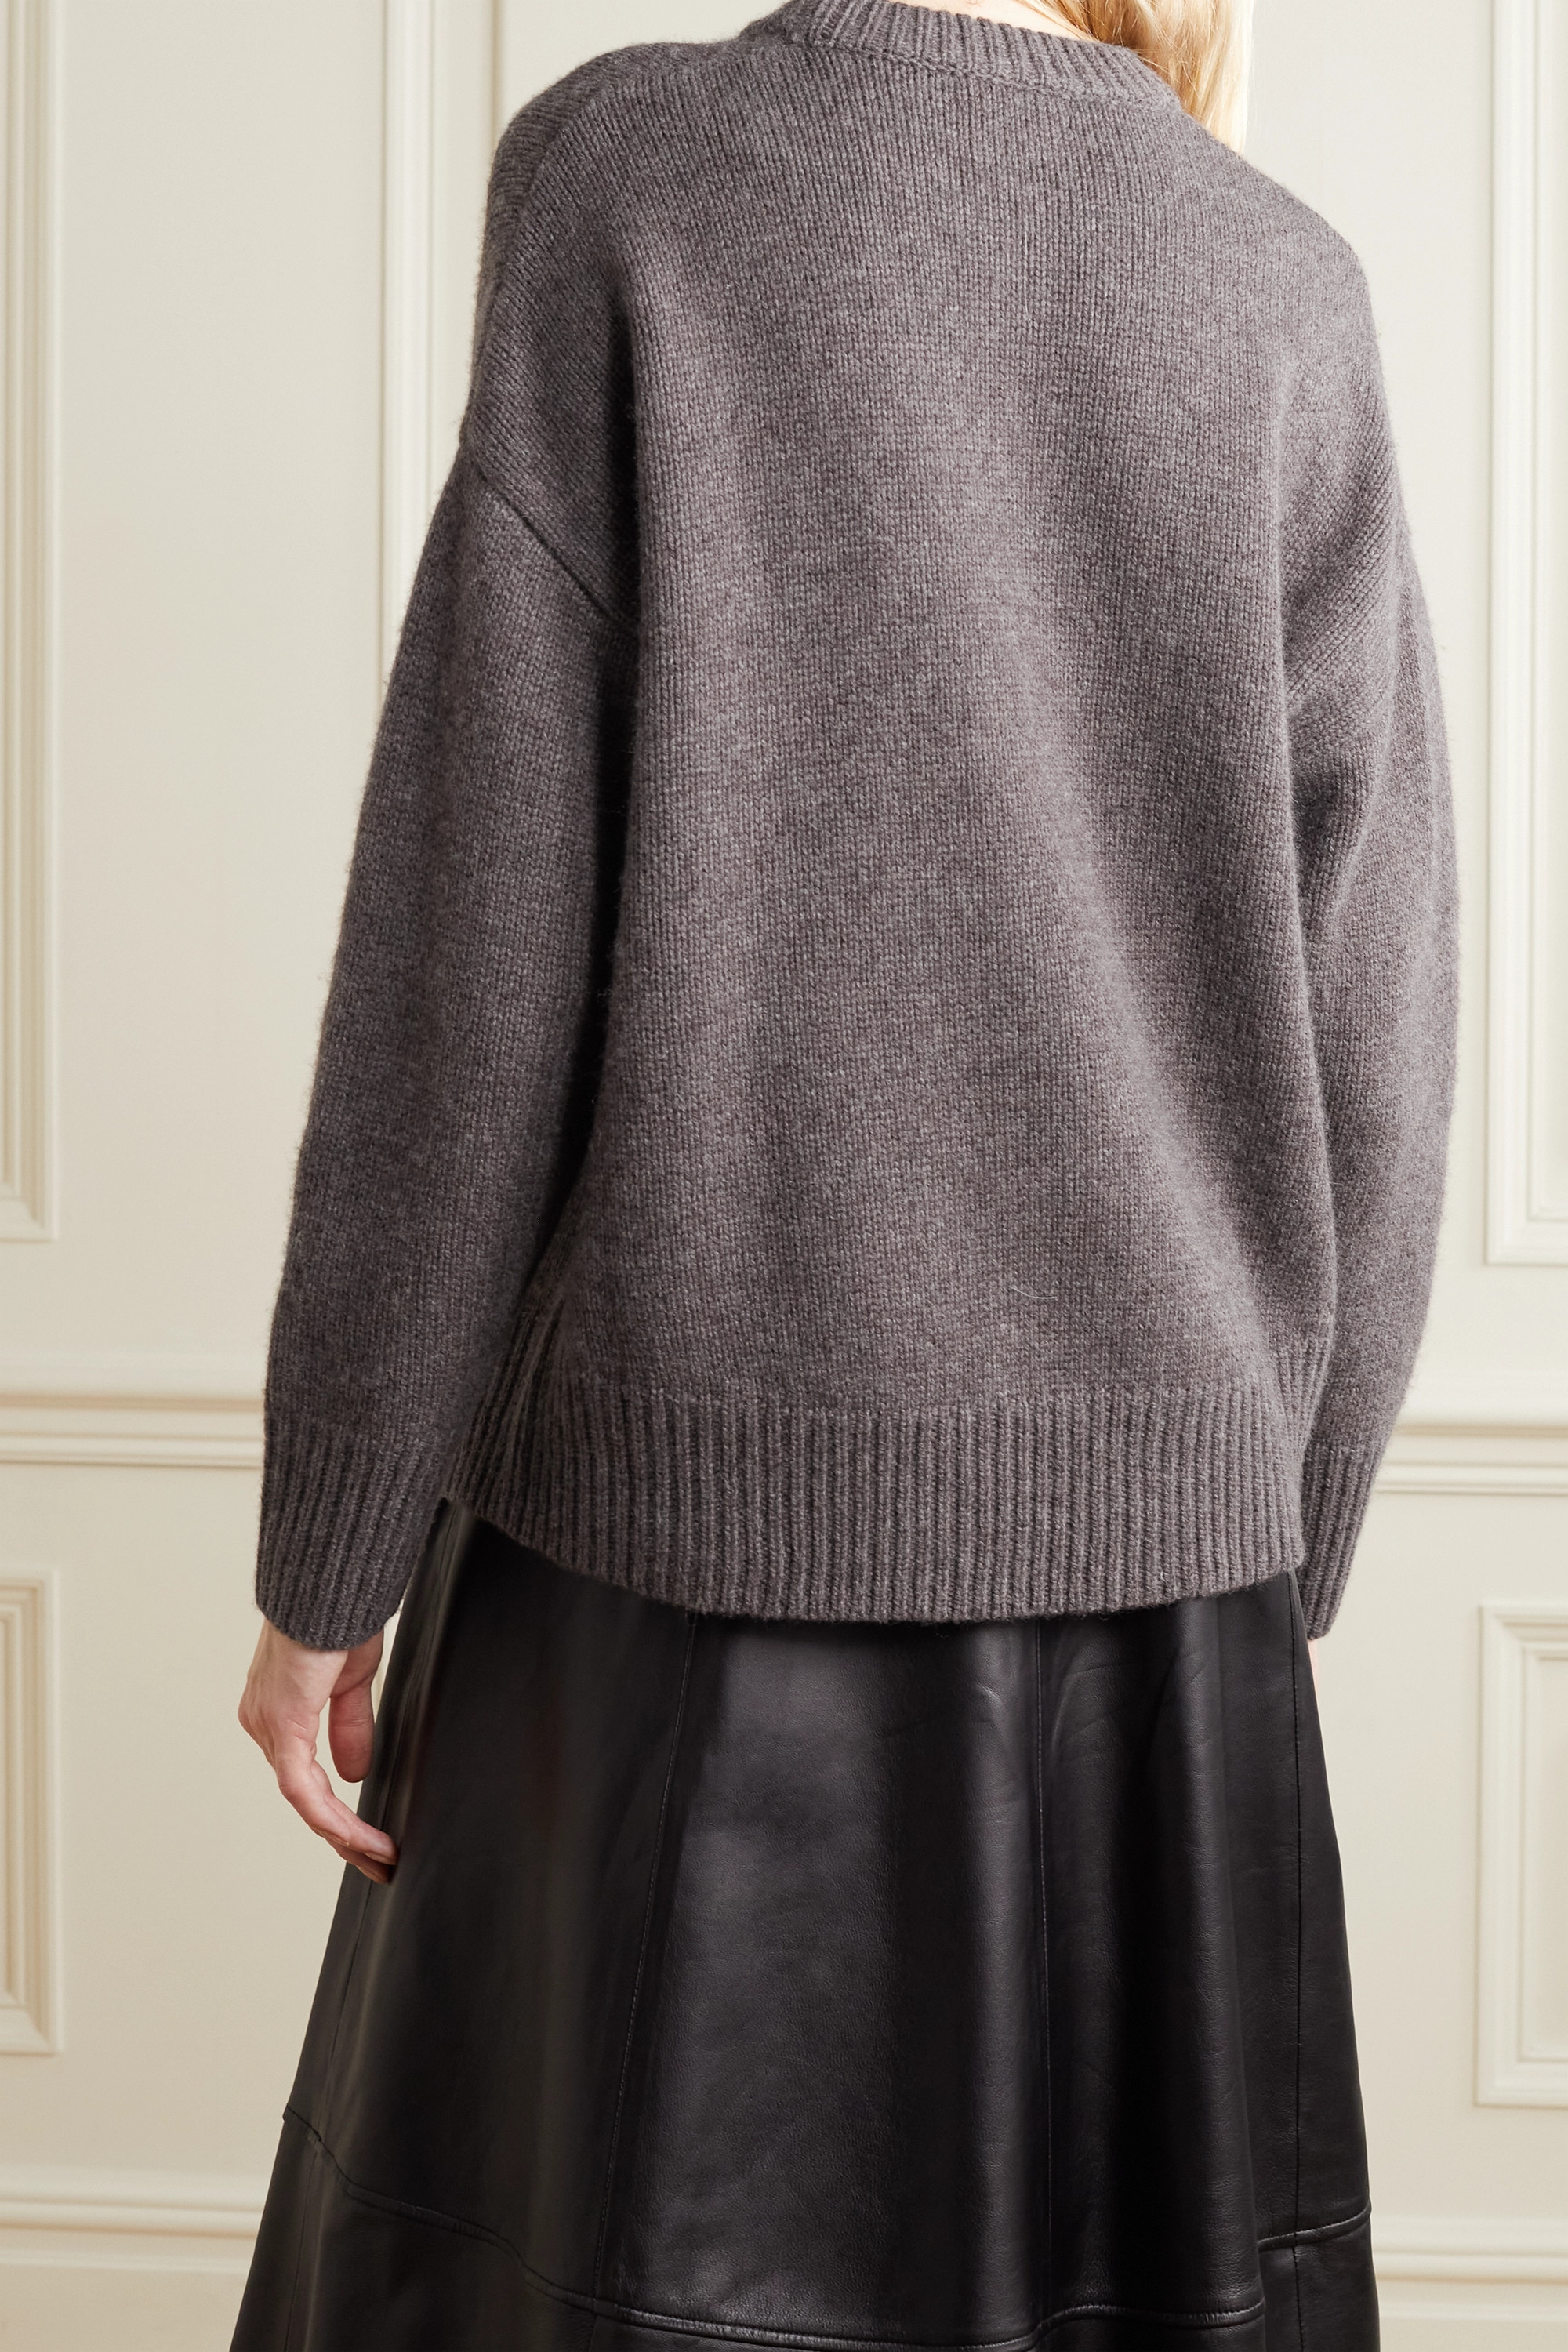 Co Oversized wool and cashmere-blend sweater